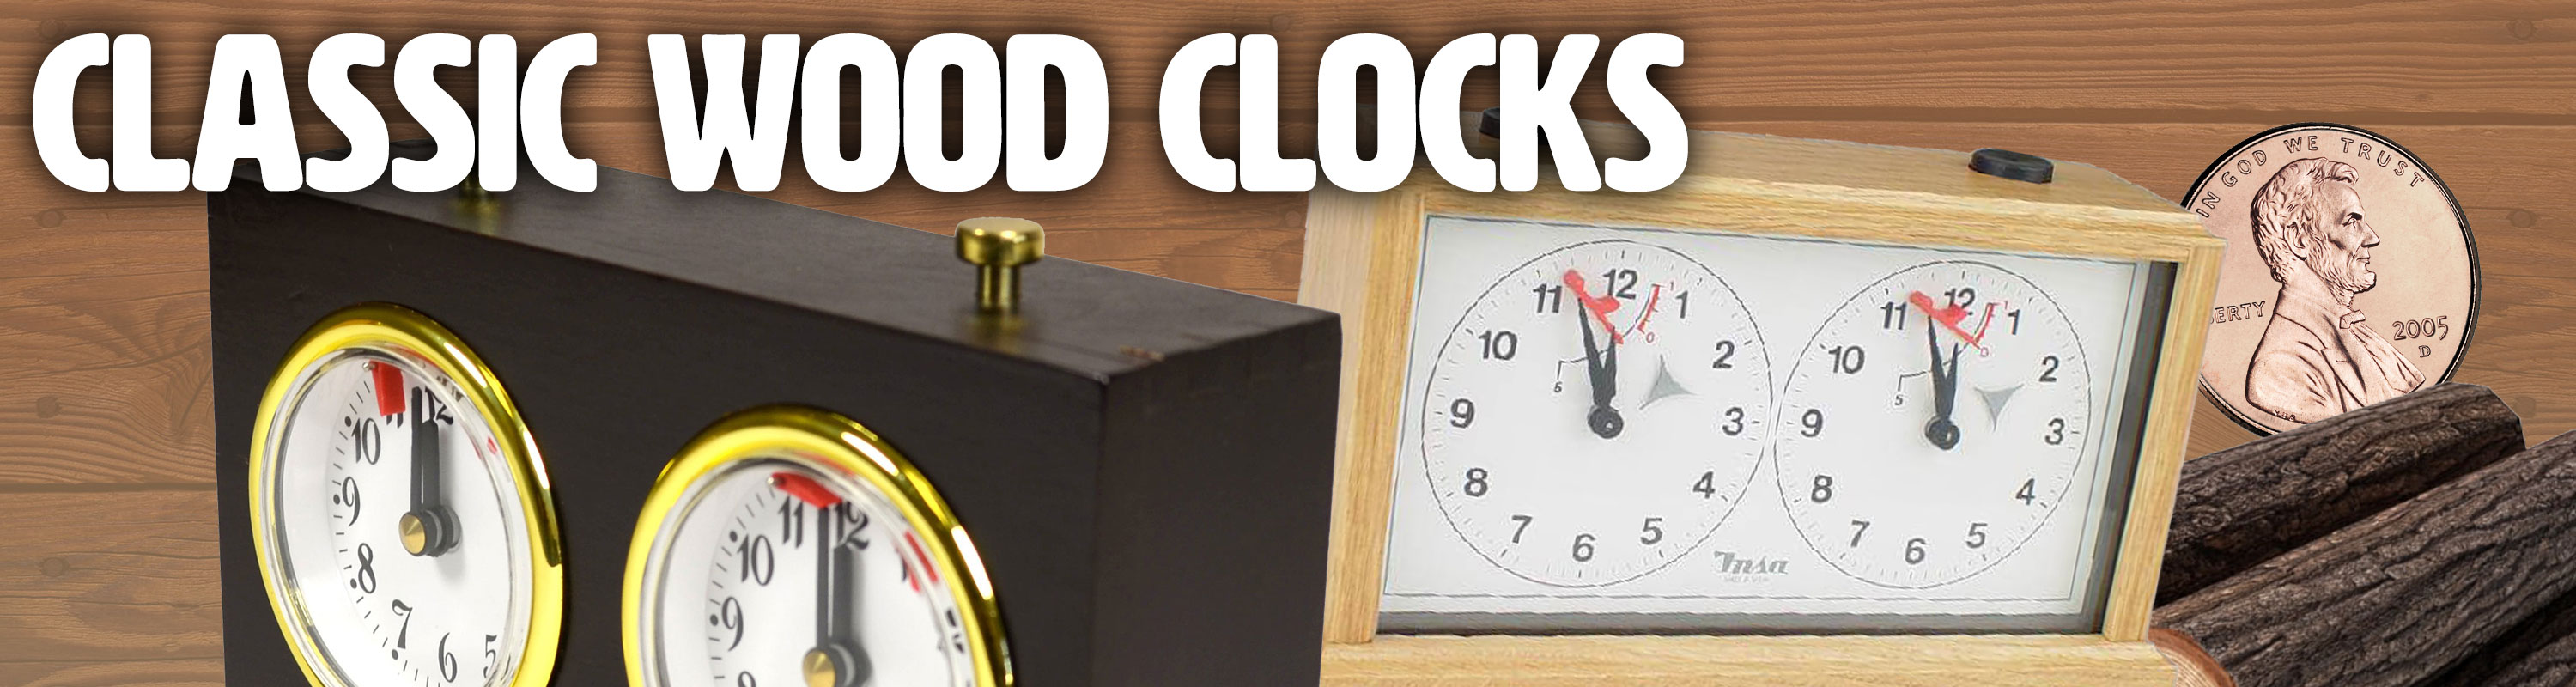 Classic Wood Clocks